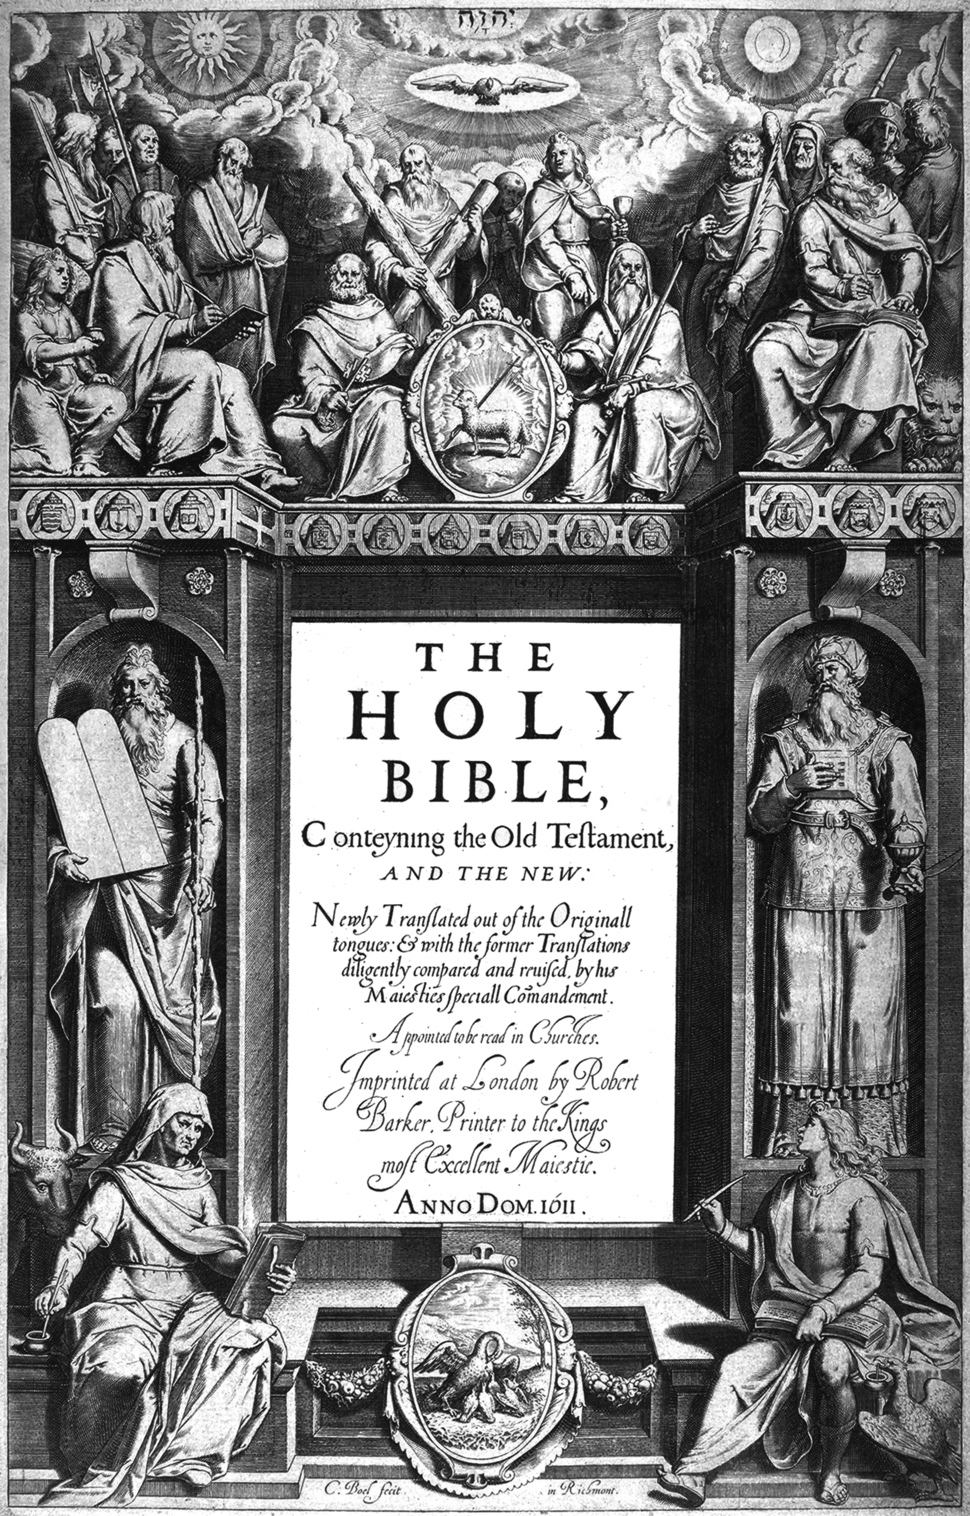 """The title page's central text is: """"THE HOLY BIBLE, Conteyning the Old Testament, AND THE NEW: Newly Translated out of the Original tongues: & with the former Translations diligently compared and revised, by his Majesties speciall Comandement. Appointed to be read in Churches. Imprinted at London by Robert Barker, Printer to the Kings most Excellent Majestie. ANNO DOM. 1611."""" At bottom is: """"C. Boel fecit in Richmont.""""."""